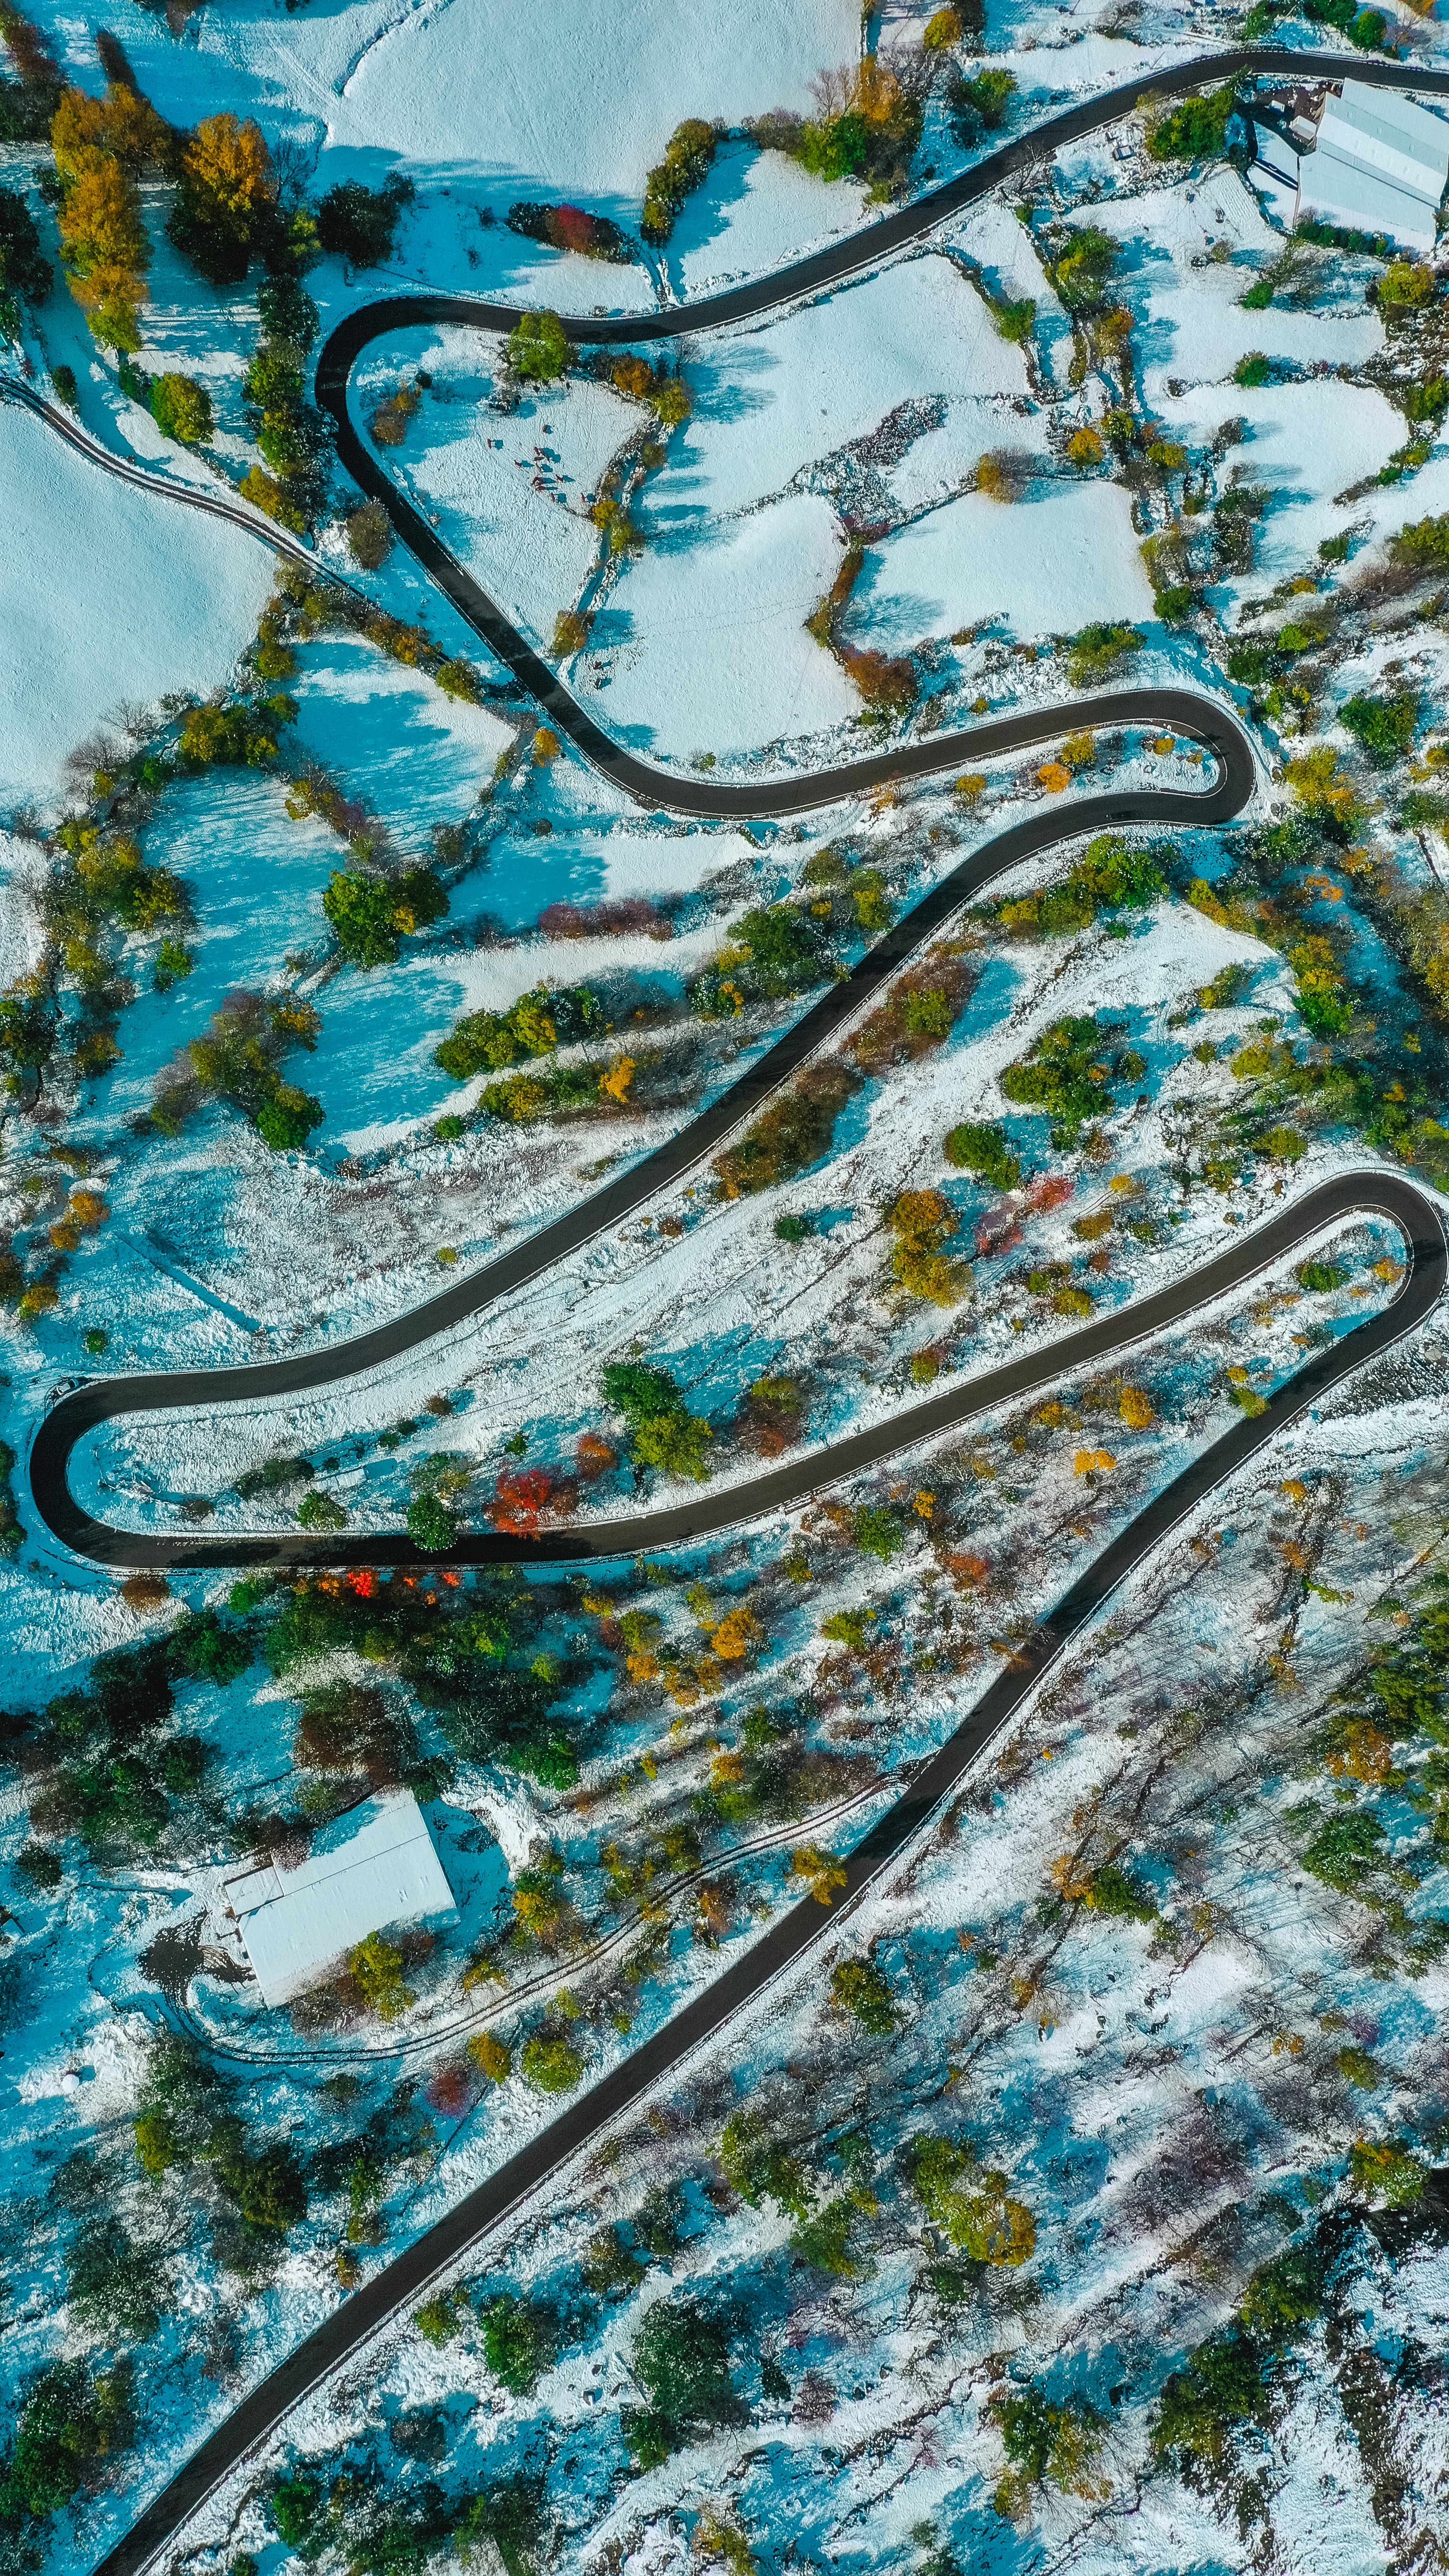 101907 download wallpaper Nature, Road, Winding, Sinuous, View From Above, Snow Covered, Snowbound, Relief screensavers and pictures for free